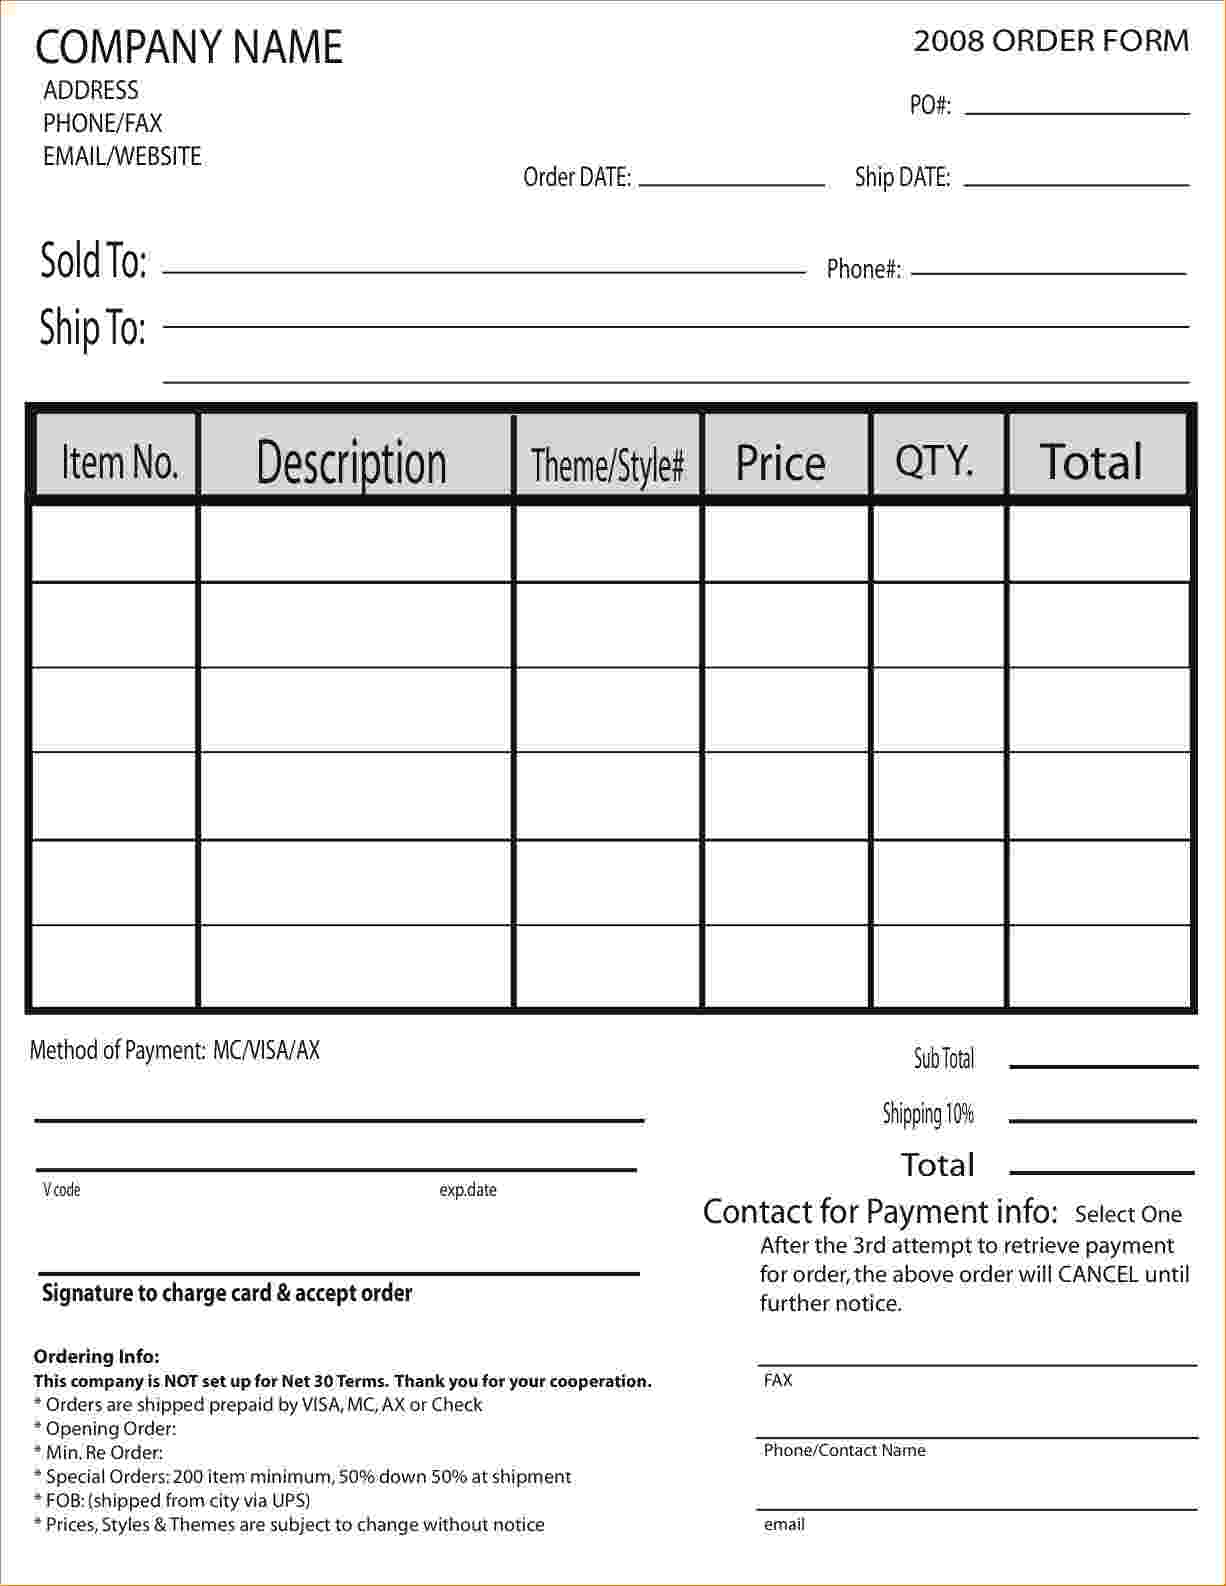 order forms examples Ecza.solinf.co